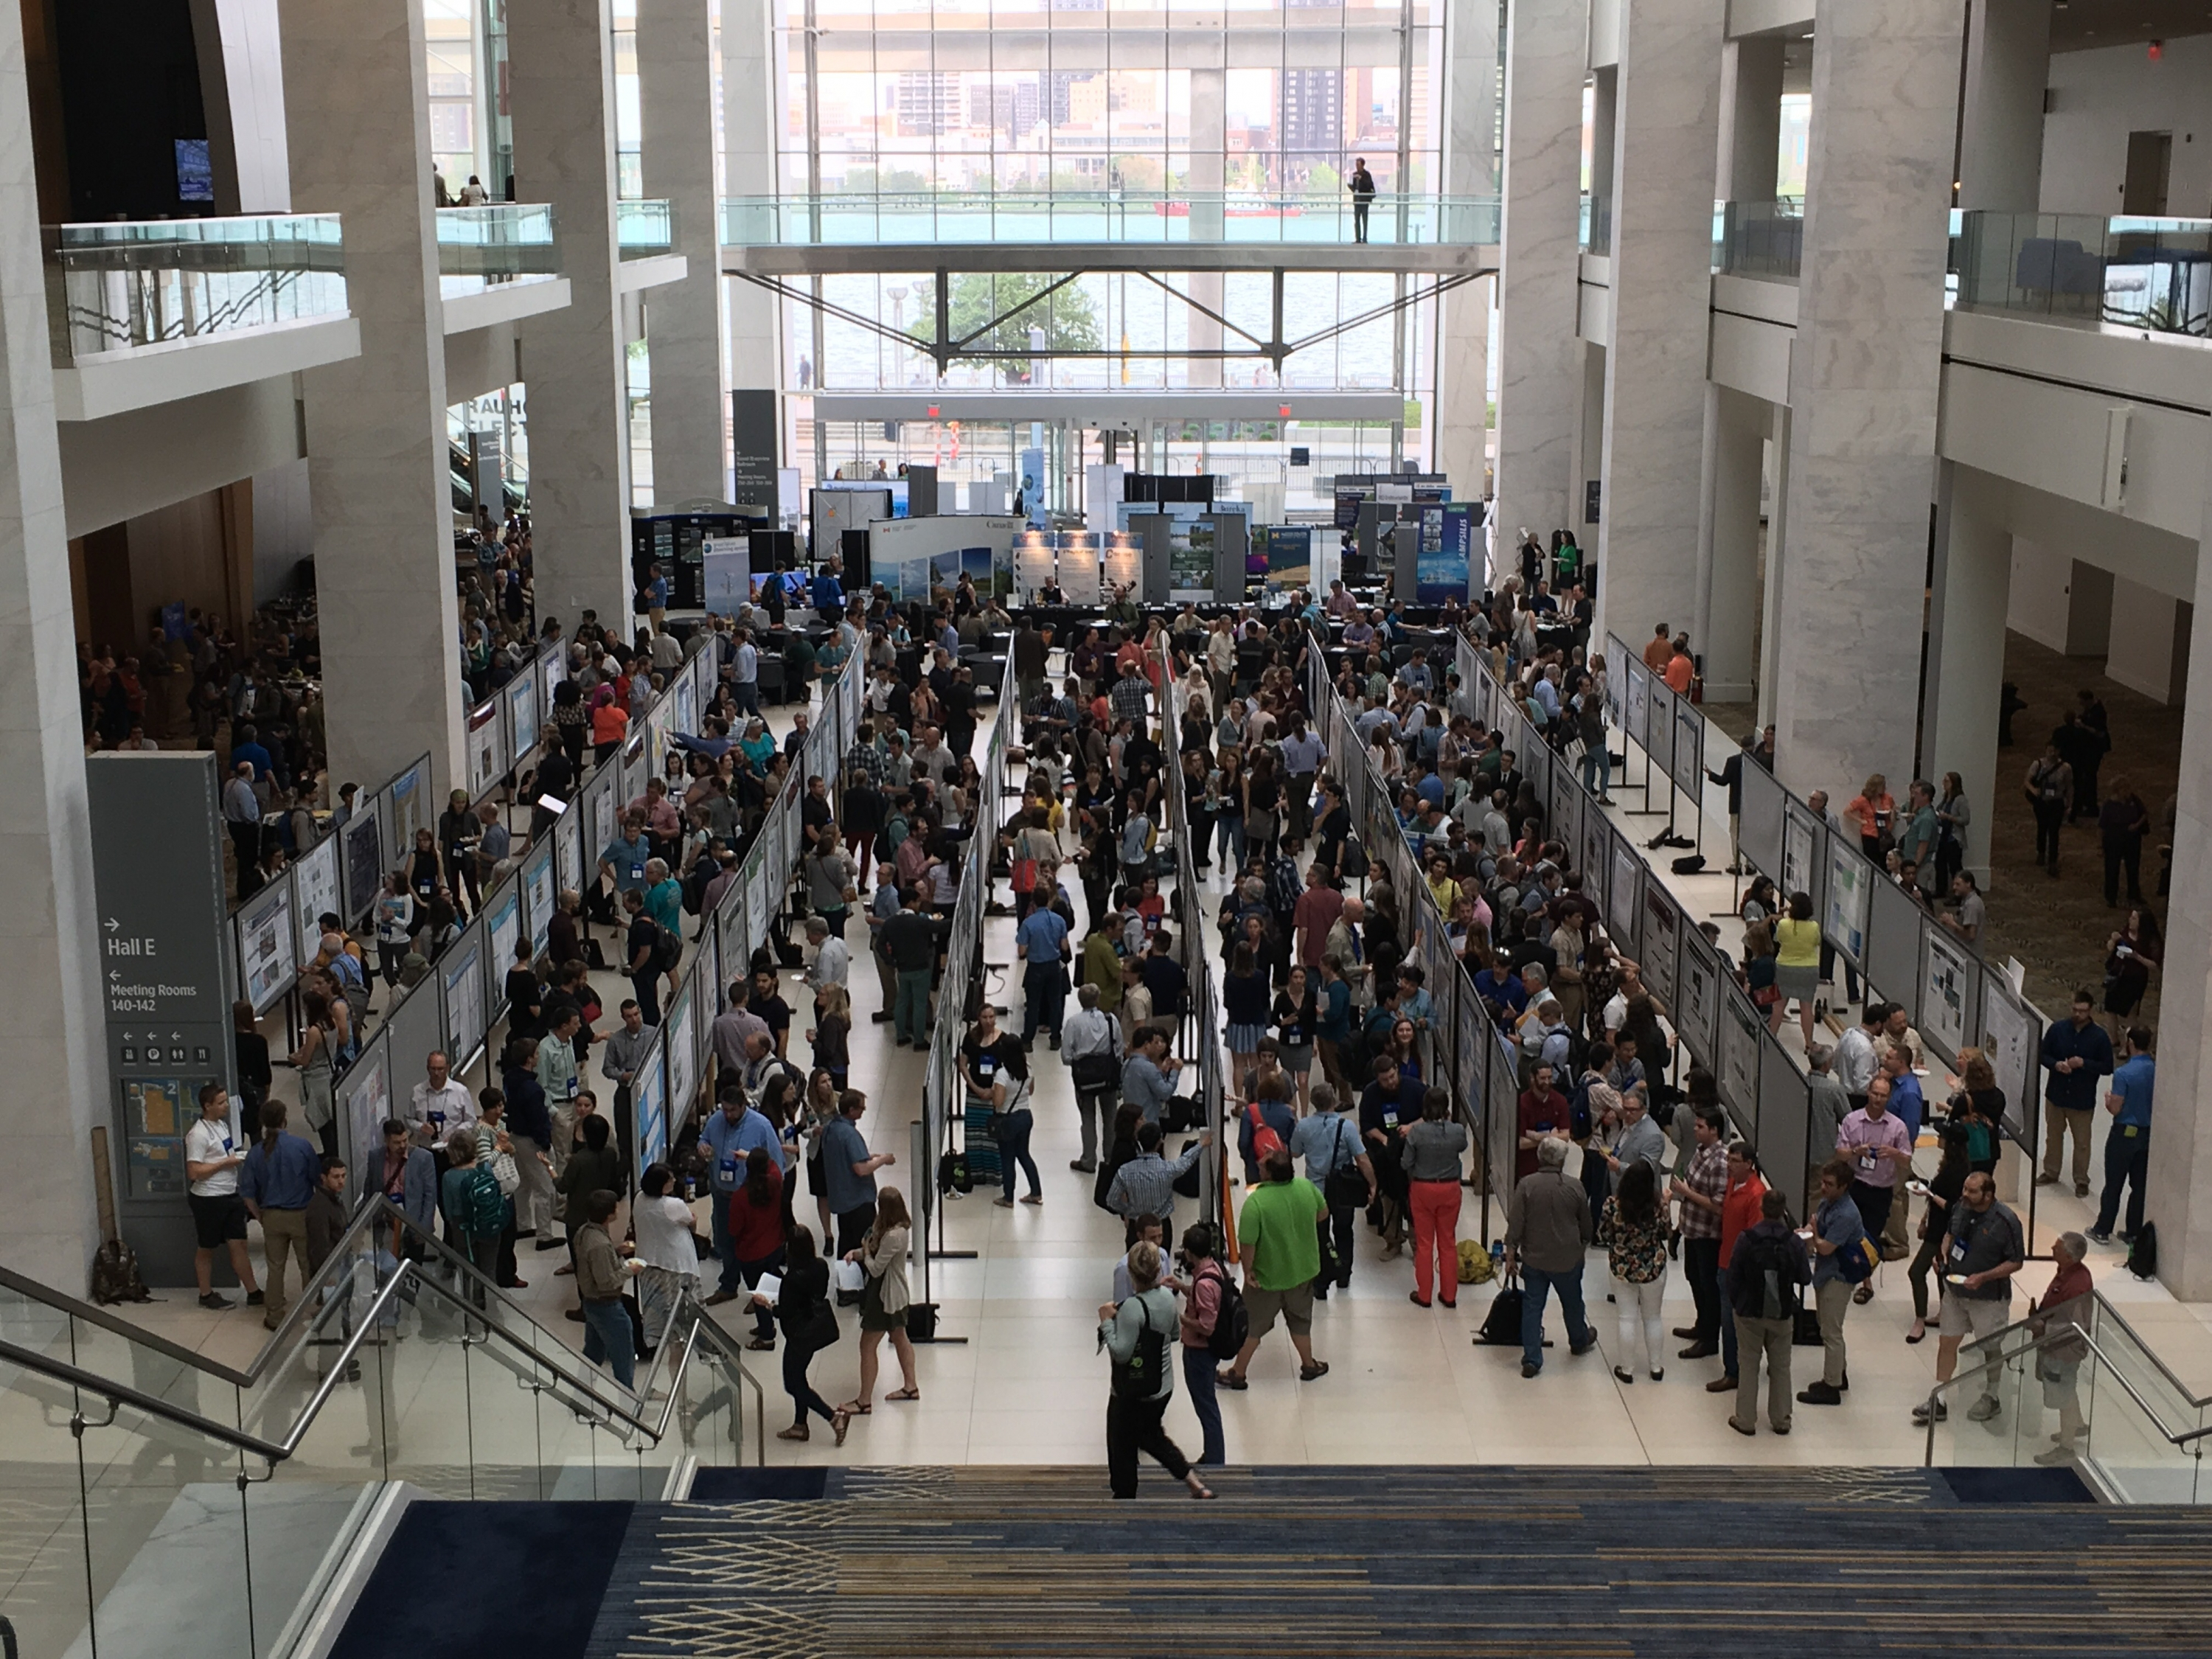 IAGLP Confernence poster session hall